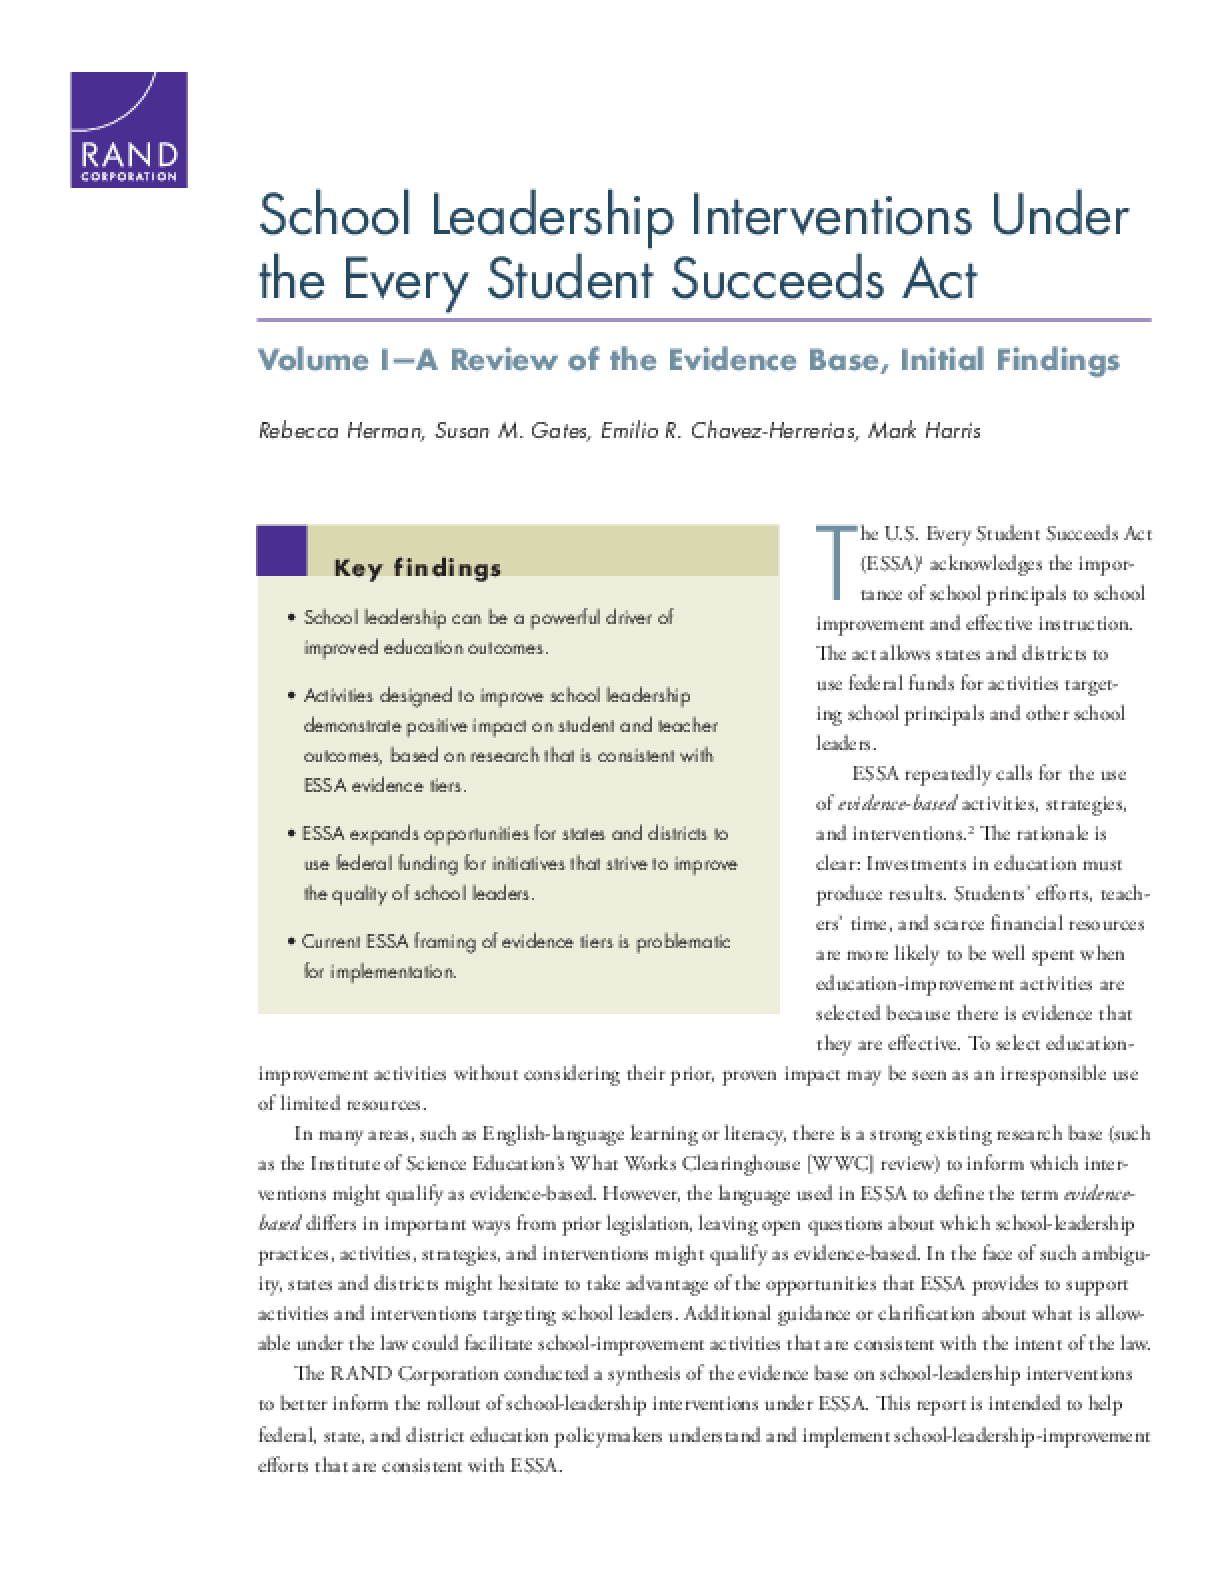 School Leadership Interventions Under the Every Student Succeeds Act: Volume I - A Review of the Evidence Base, Initial Findings